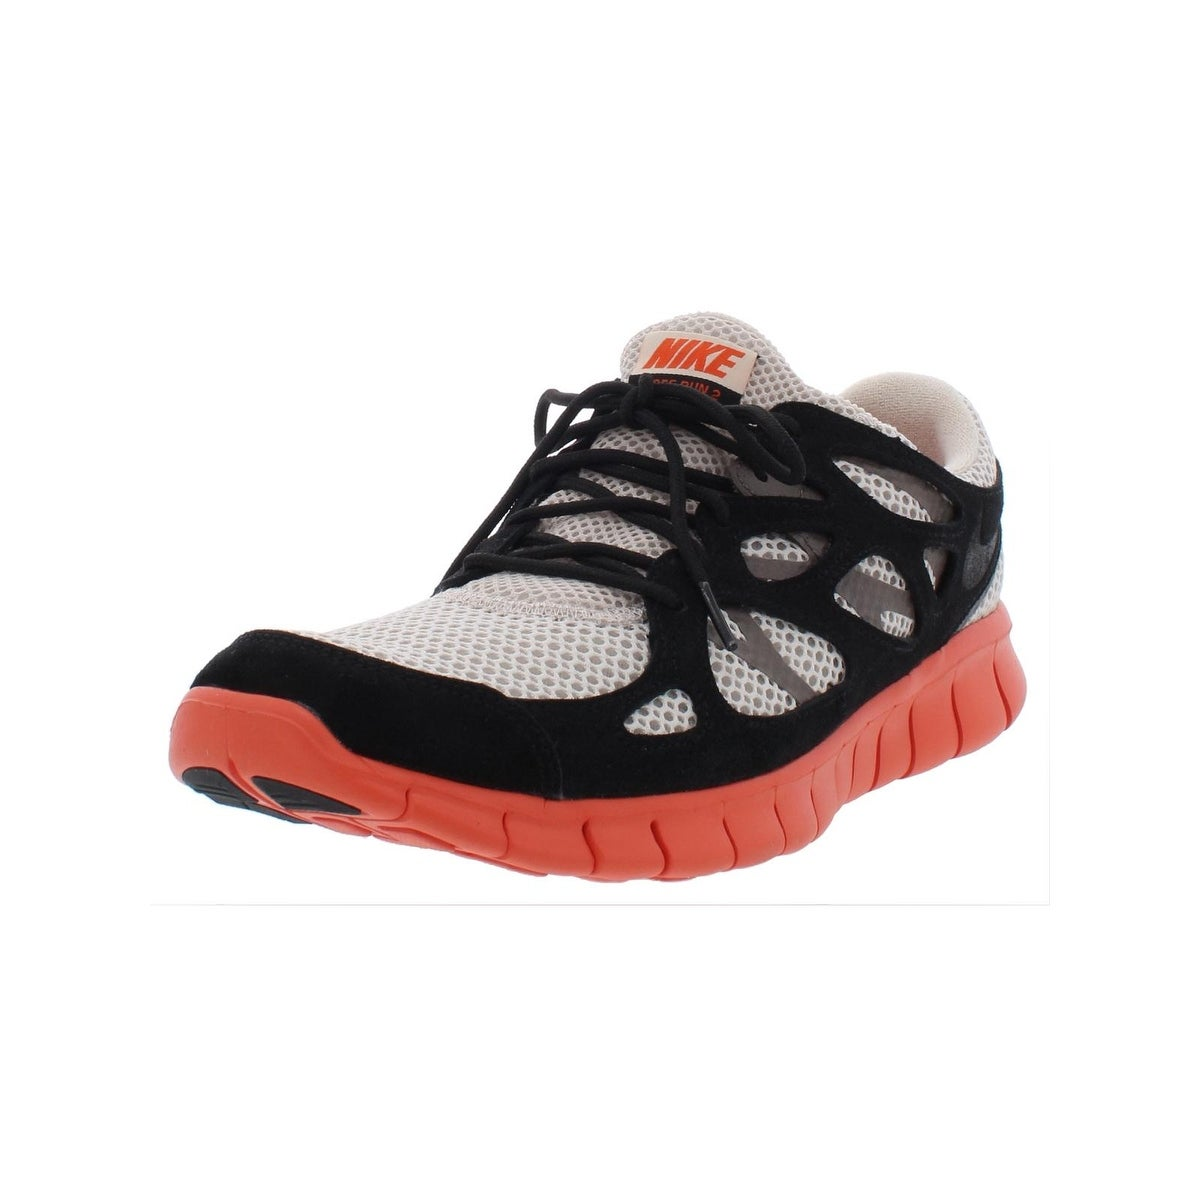 Nike Mens Nike Free Run 2 EXT Running Shoes Breathable Workout